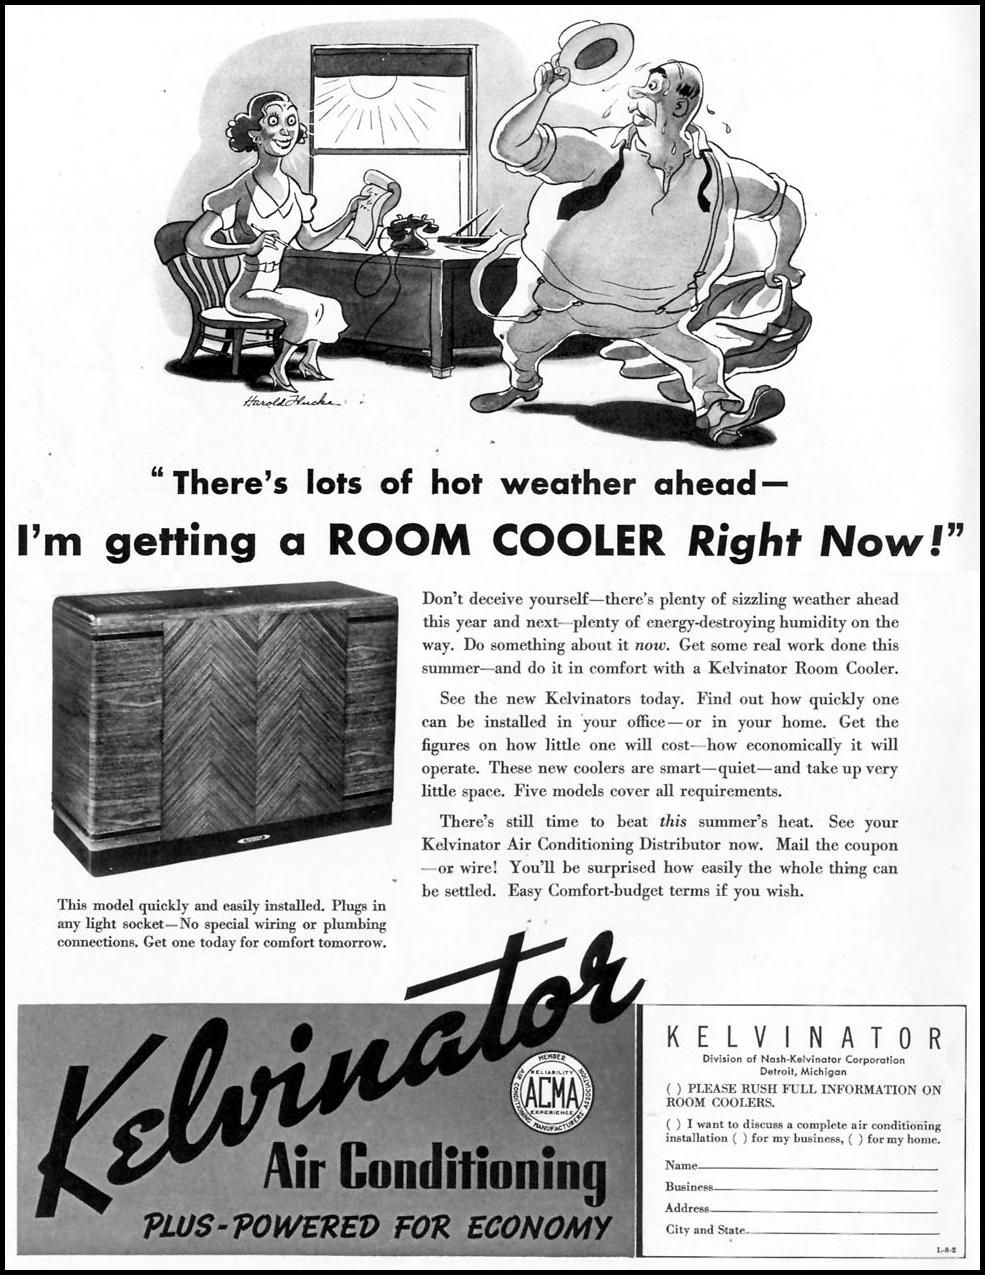 Kelvinator Room Cooler 1937 Vintage Ads Retro Advertising